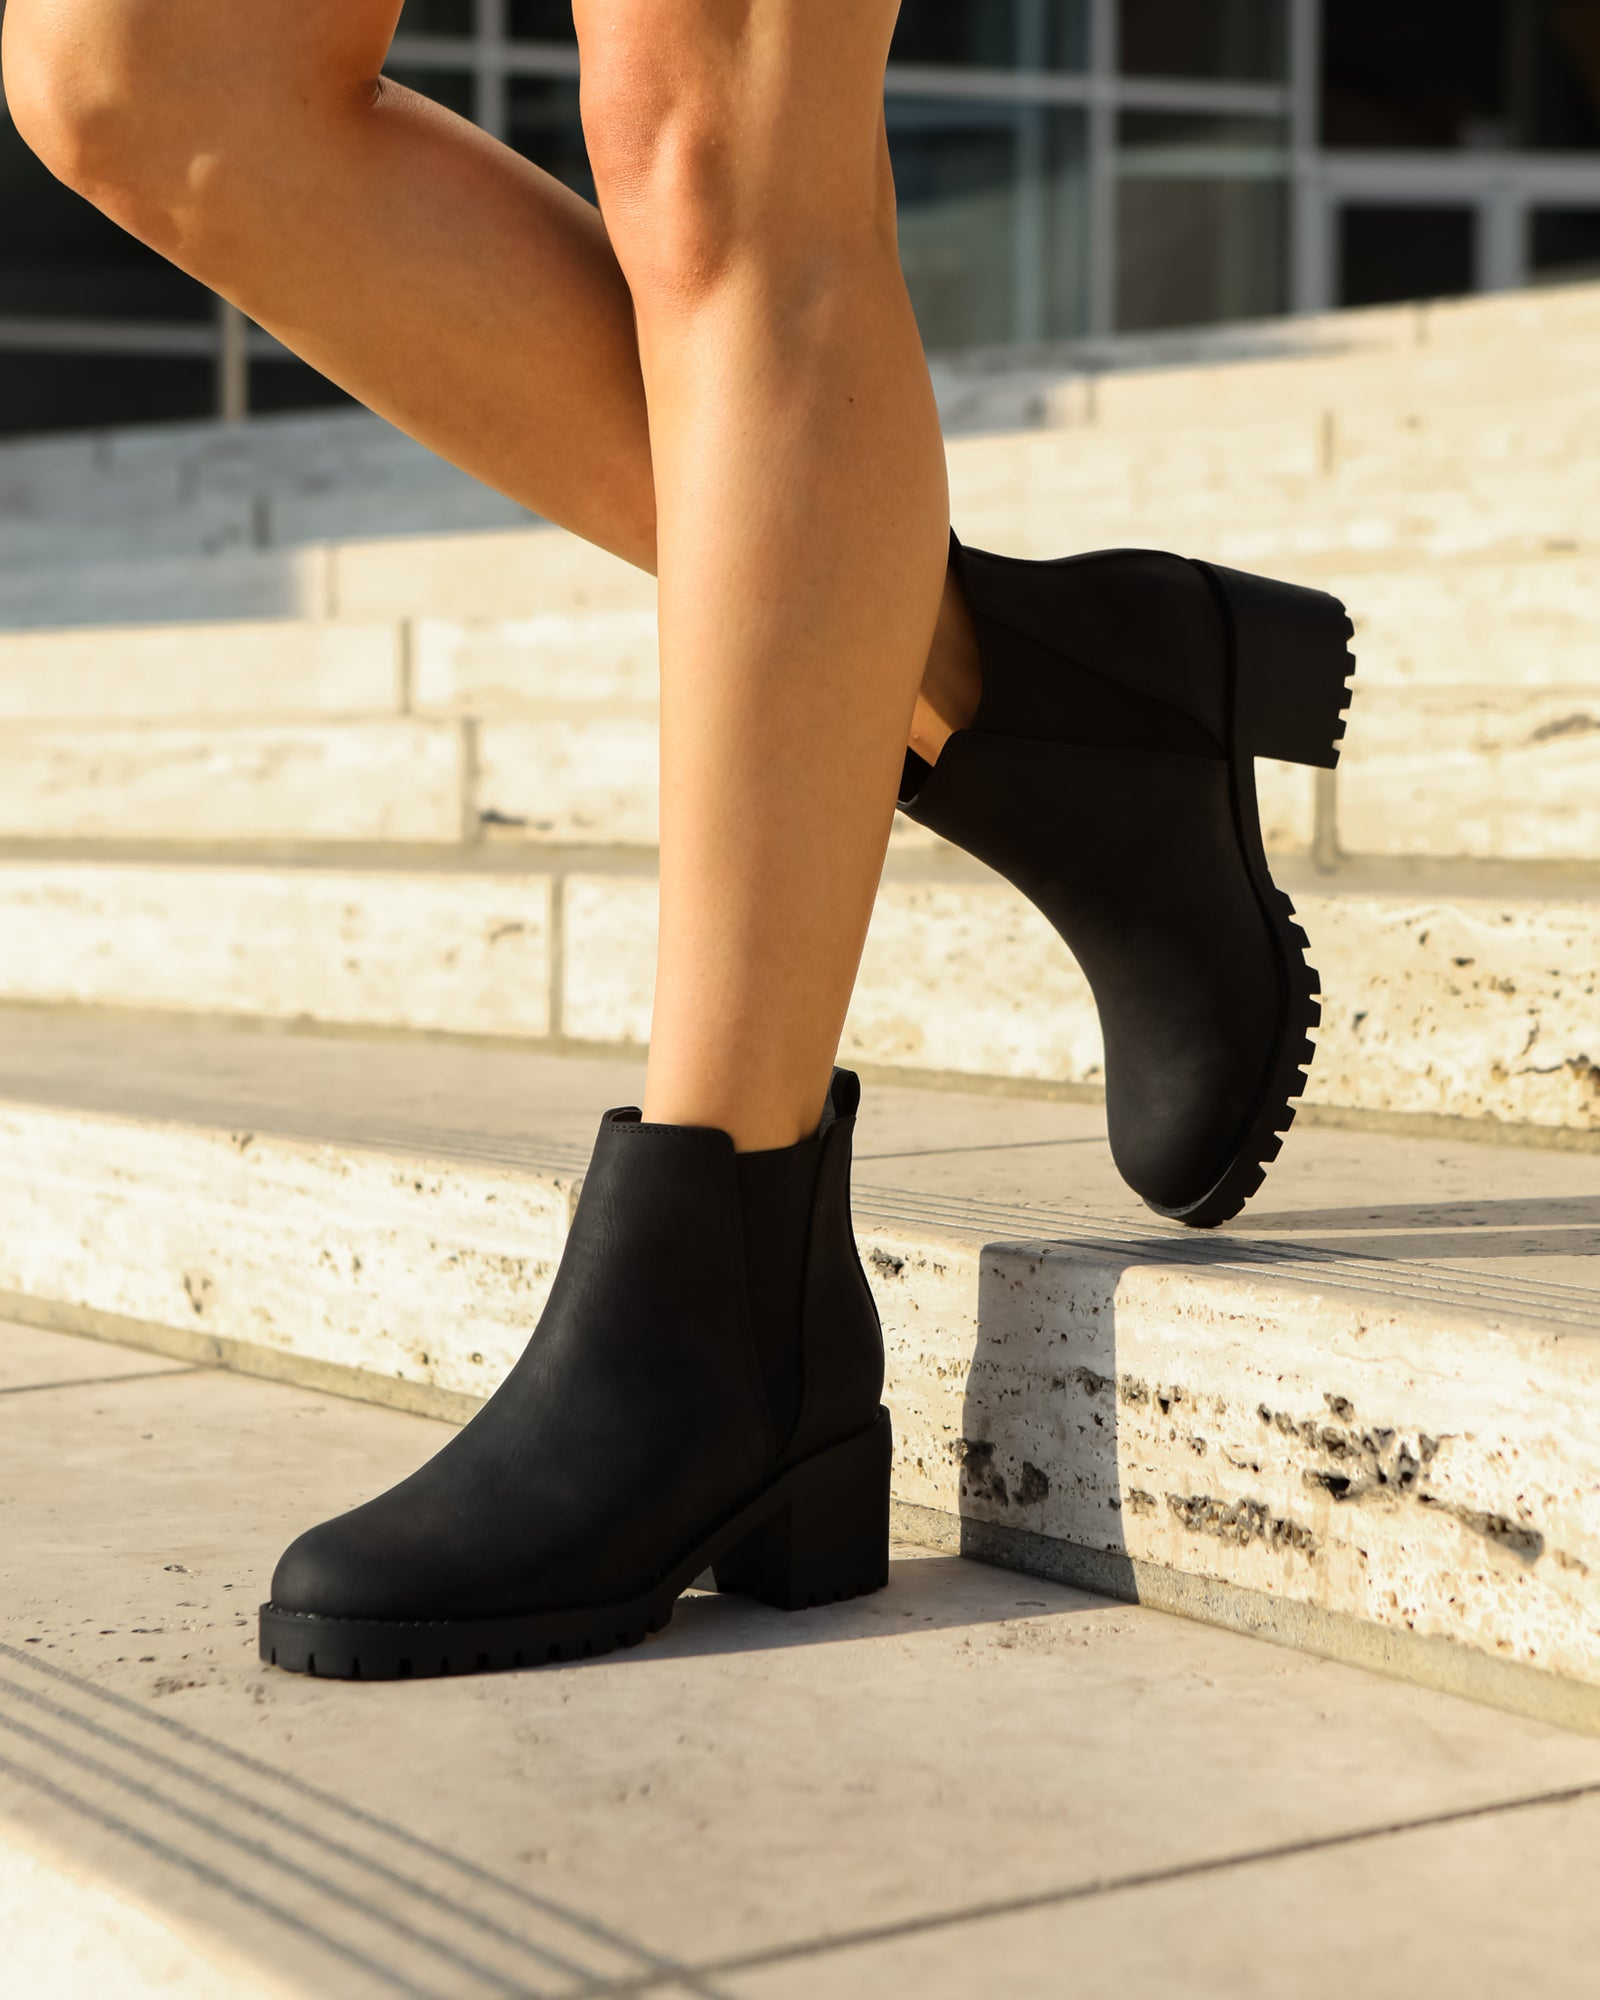 Wholesale Women's Shoes Heeled Bootie Amber NMD3